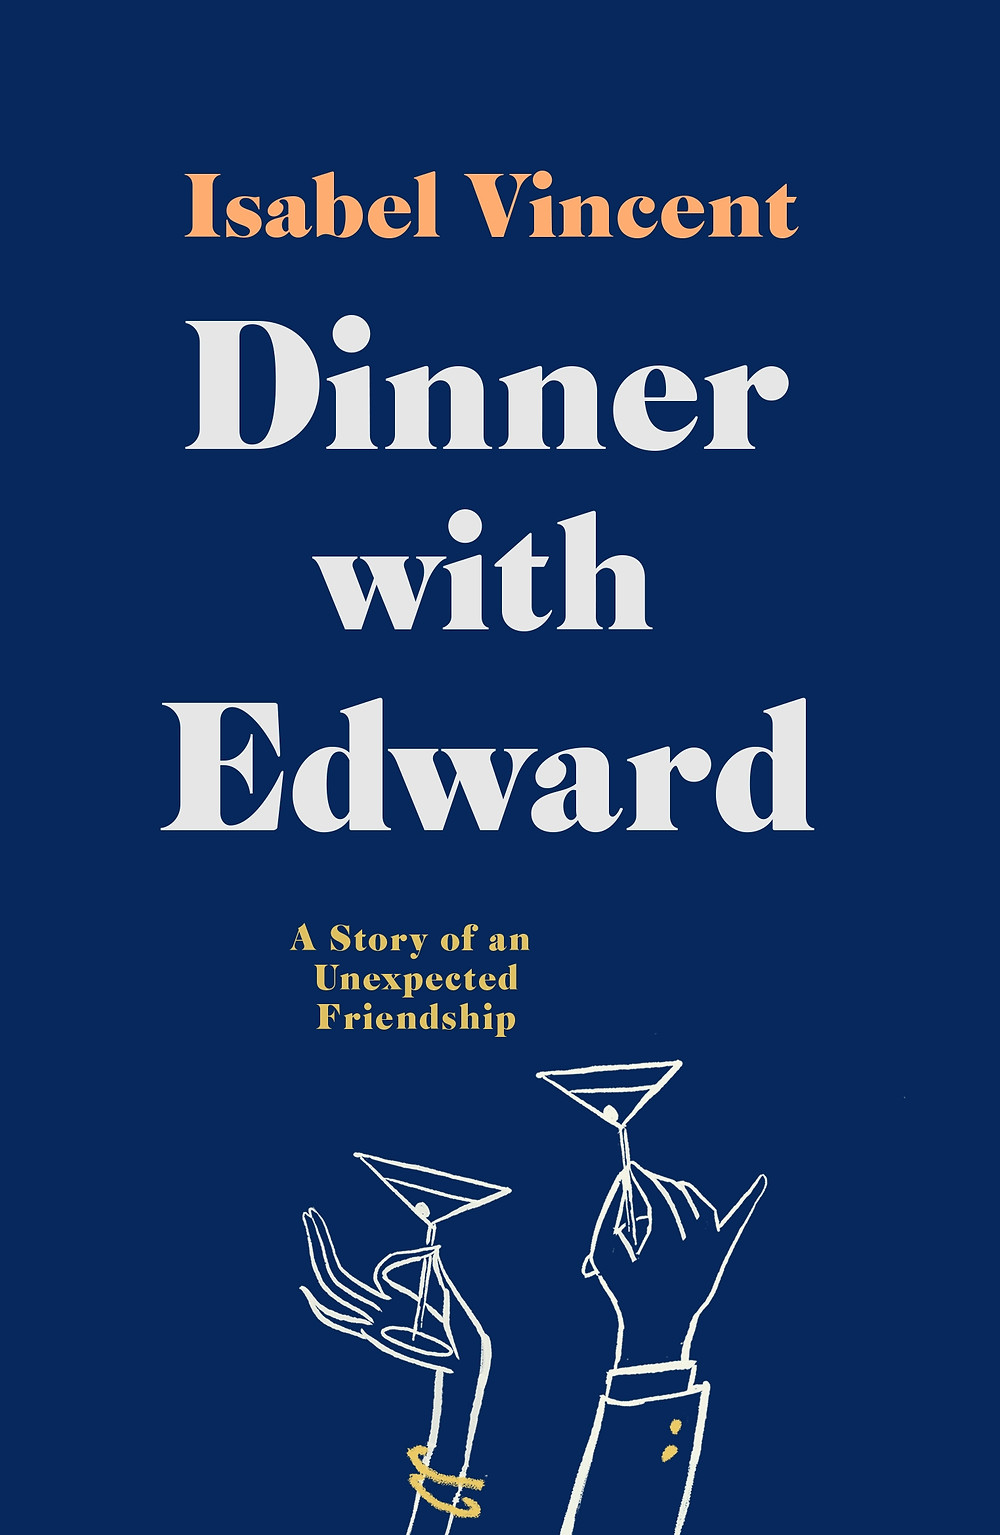 Dinner with Edward by Isabel Vincent : the book slut book reviews thebookslut pushkin press